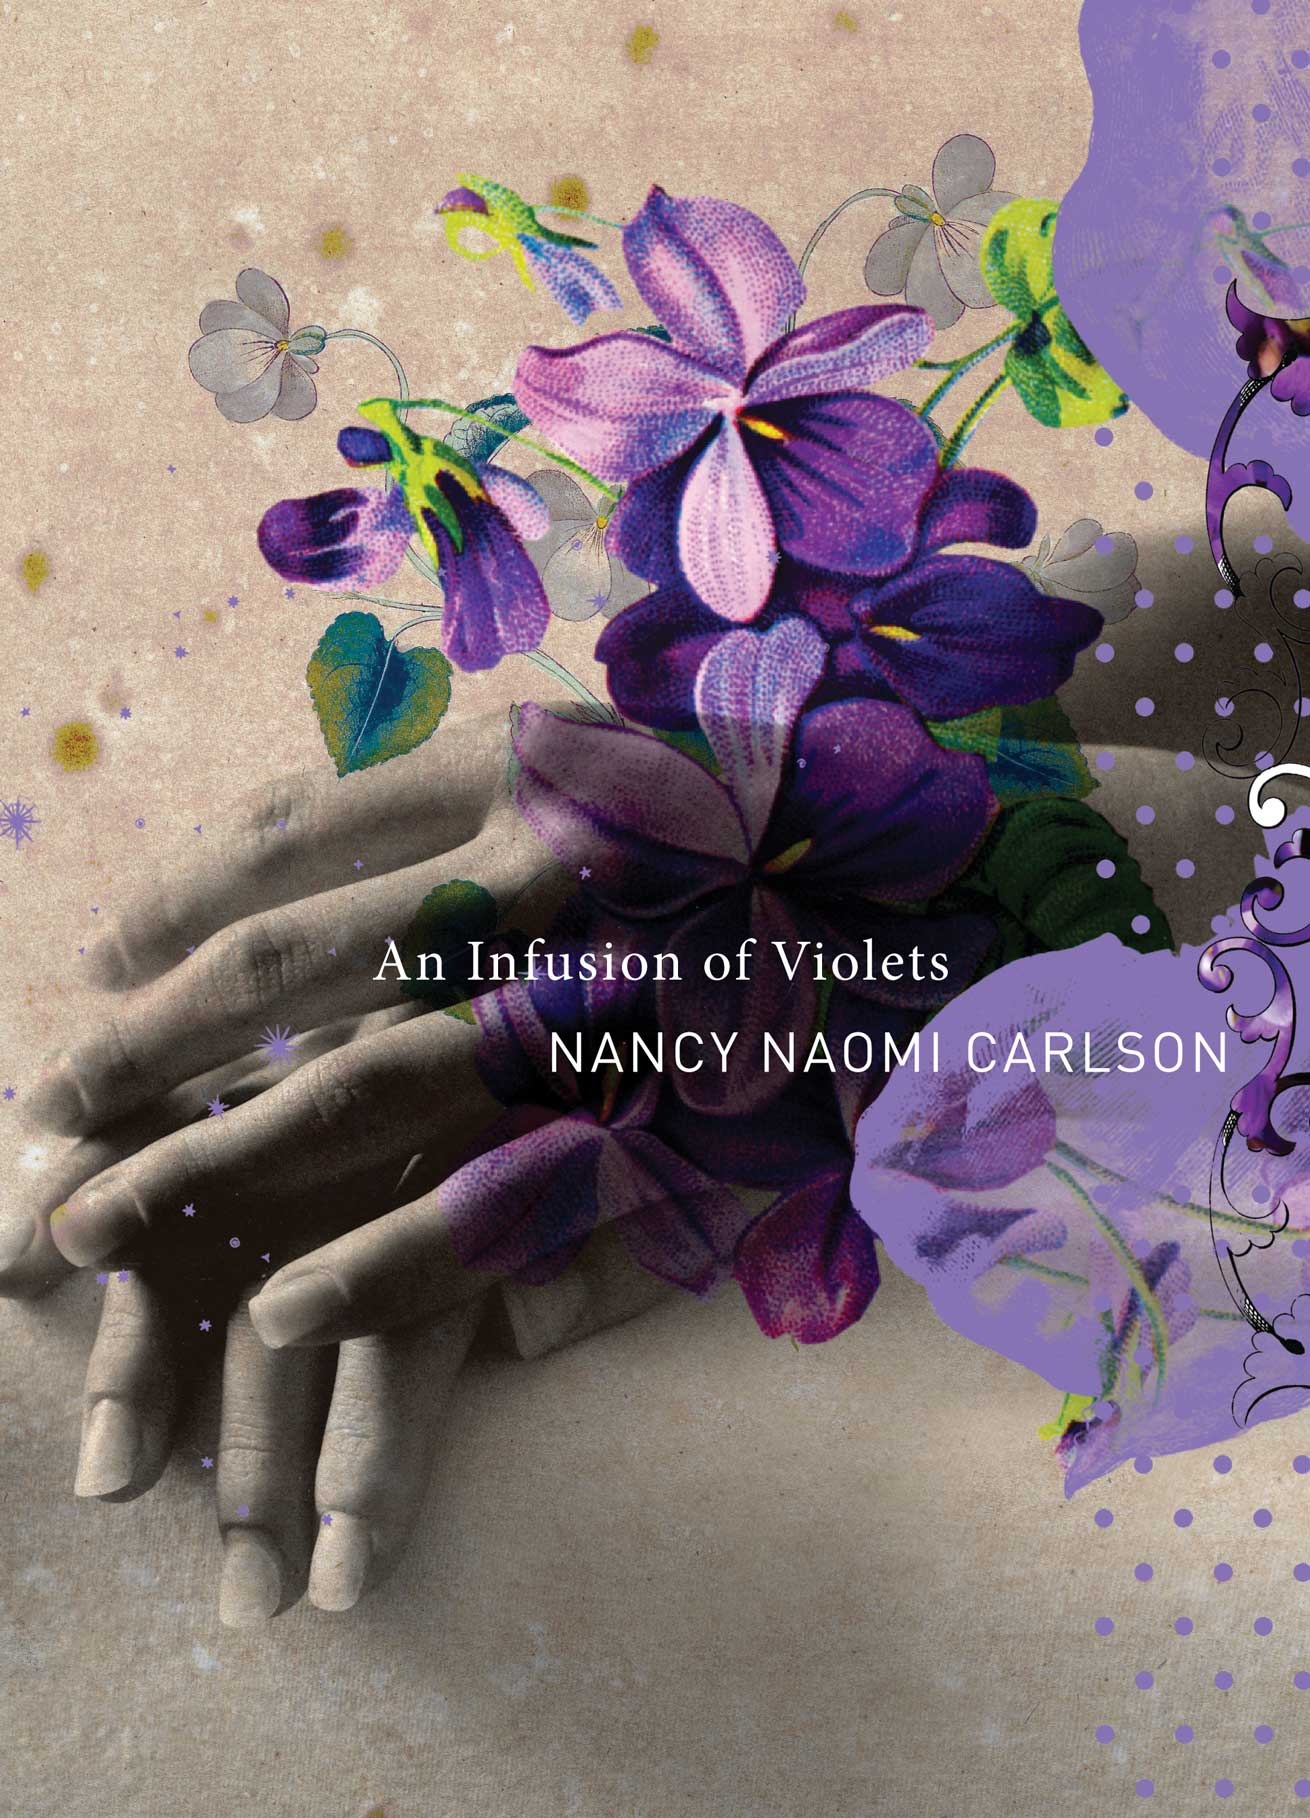 An Infusion of Violets by Nancy Naomi Carlson | Seagull Books